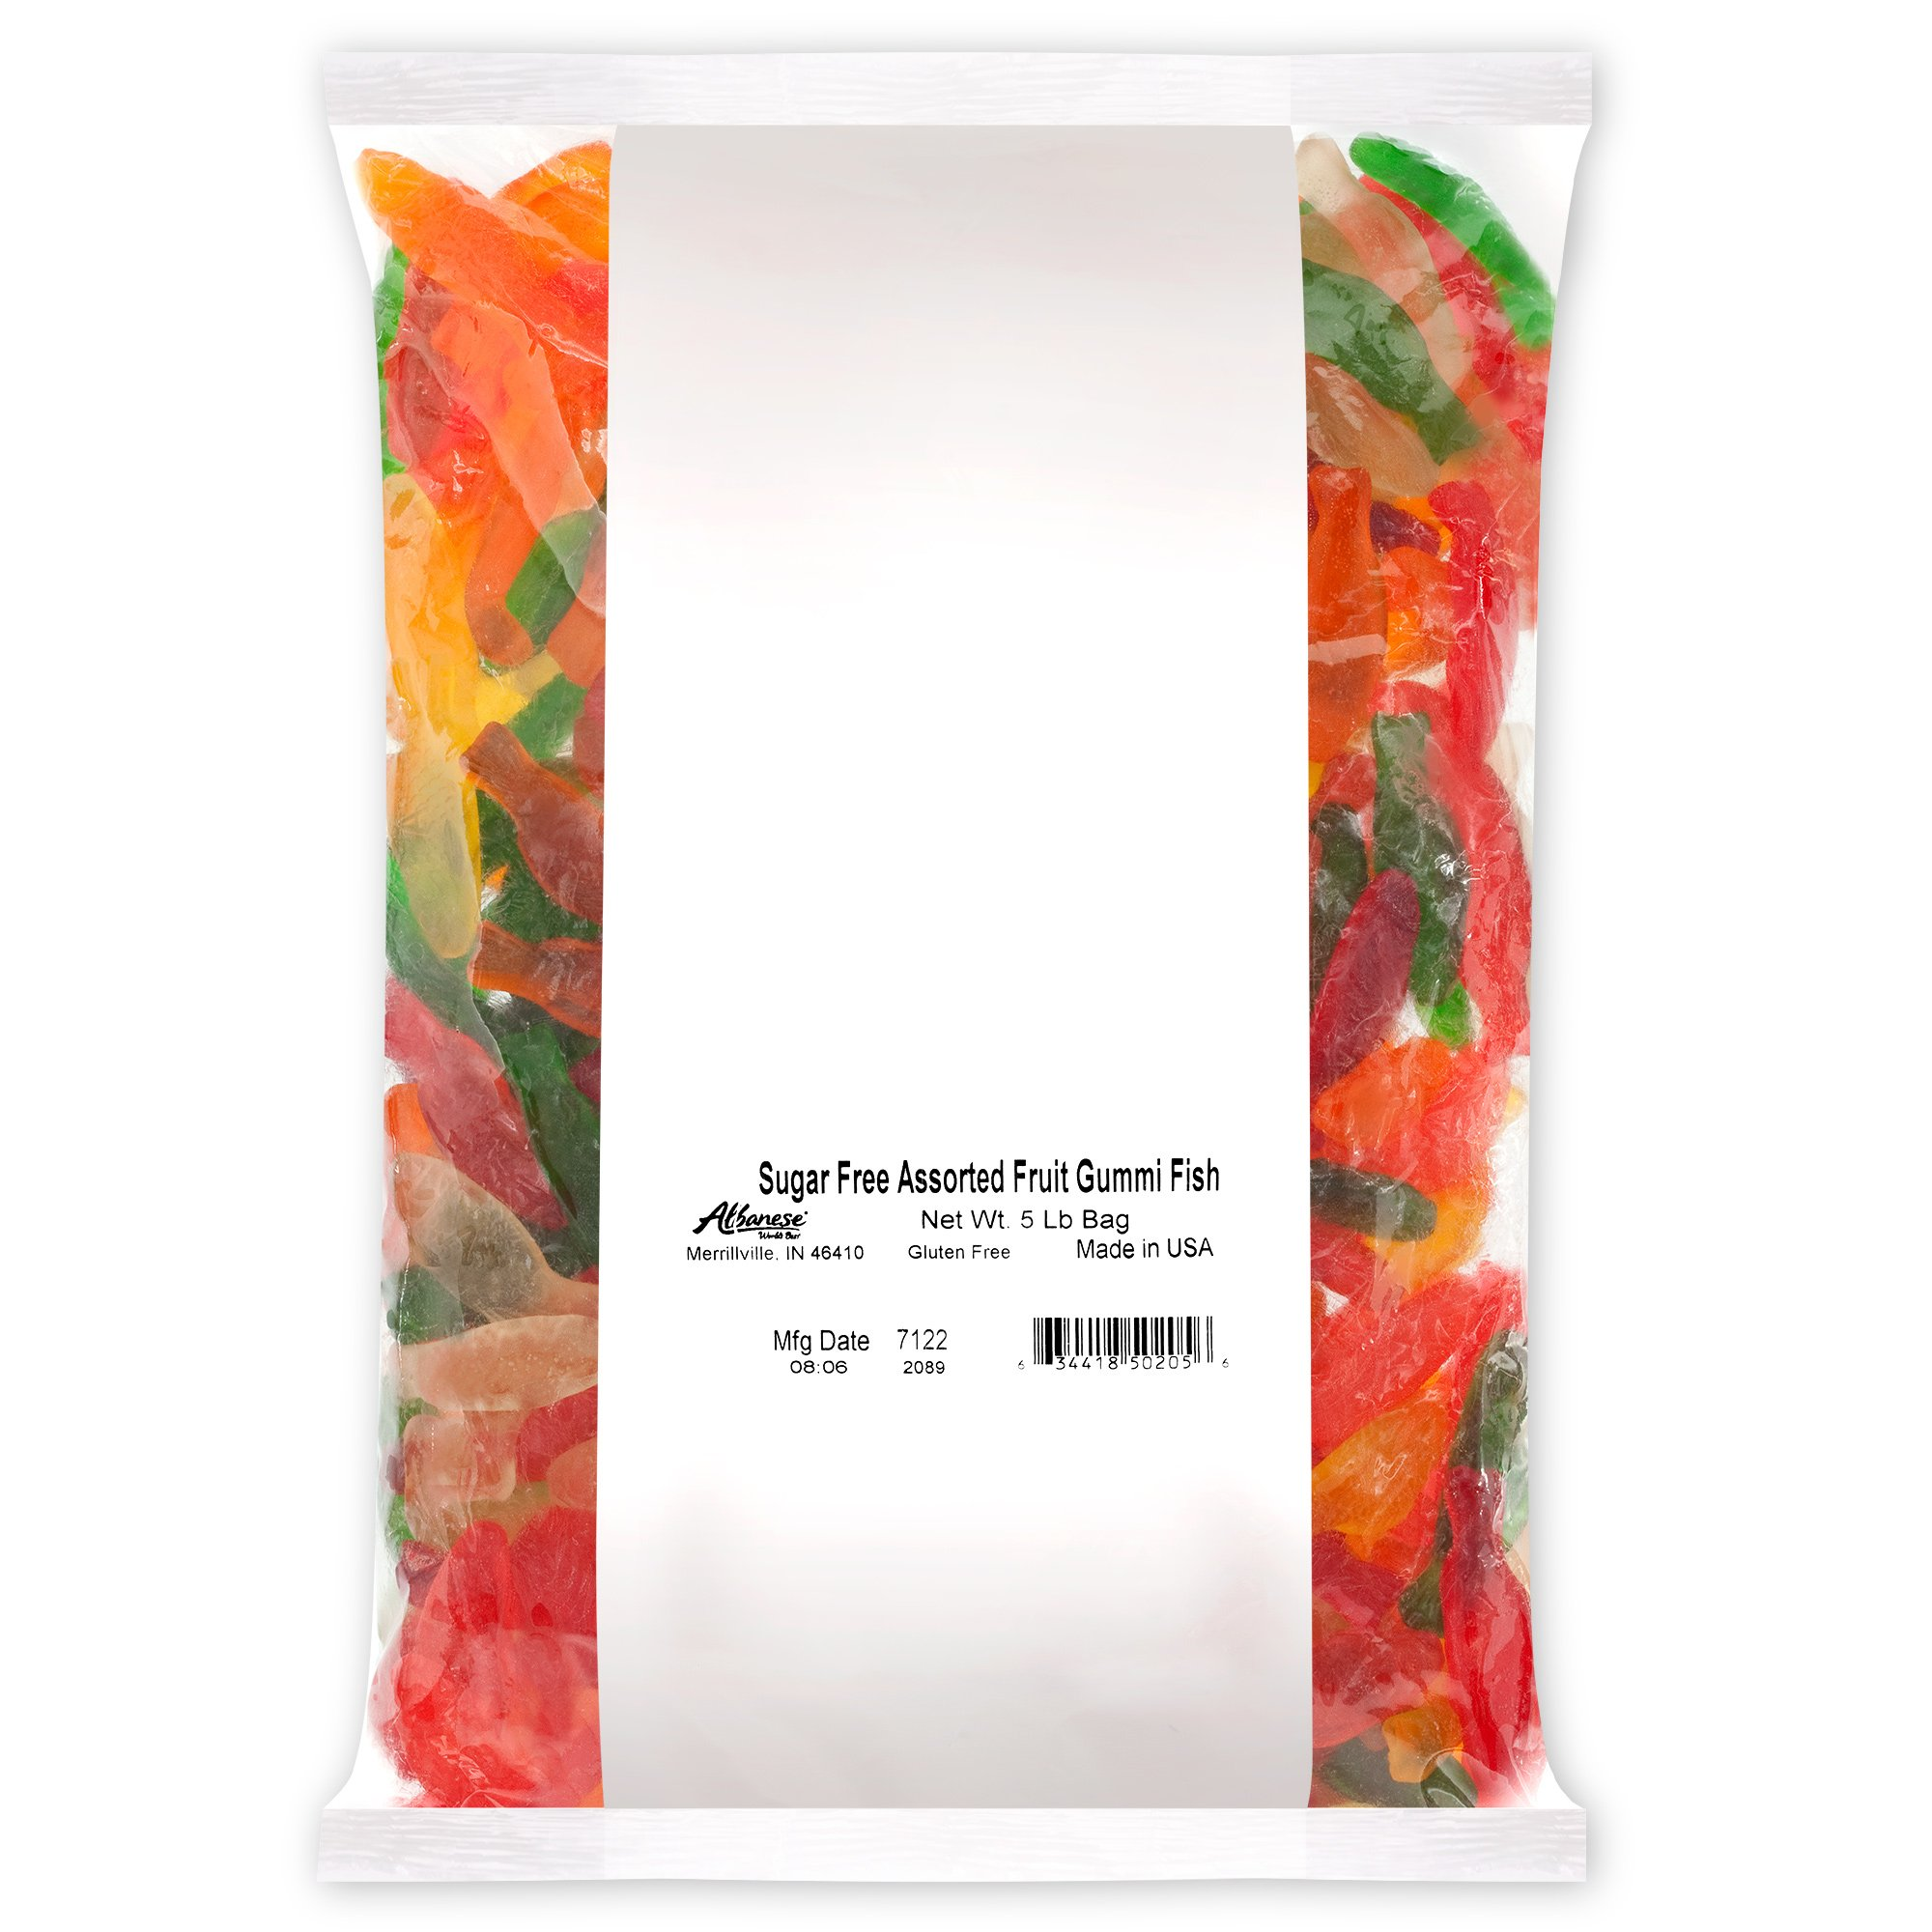 Haribo gummy bears are just one of many products that thomas - Albanese Candy Sugar Free Assorted Fruit Gummi Fish 5 Pound Bag